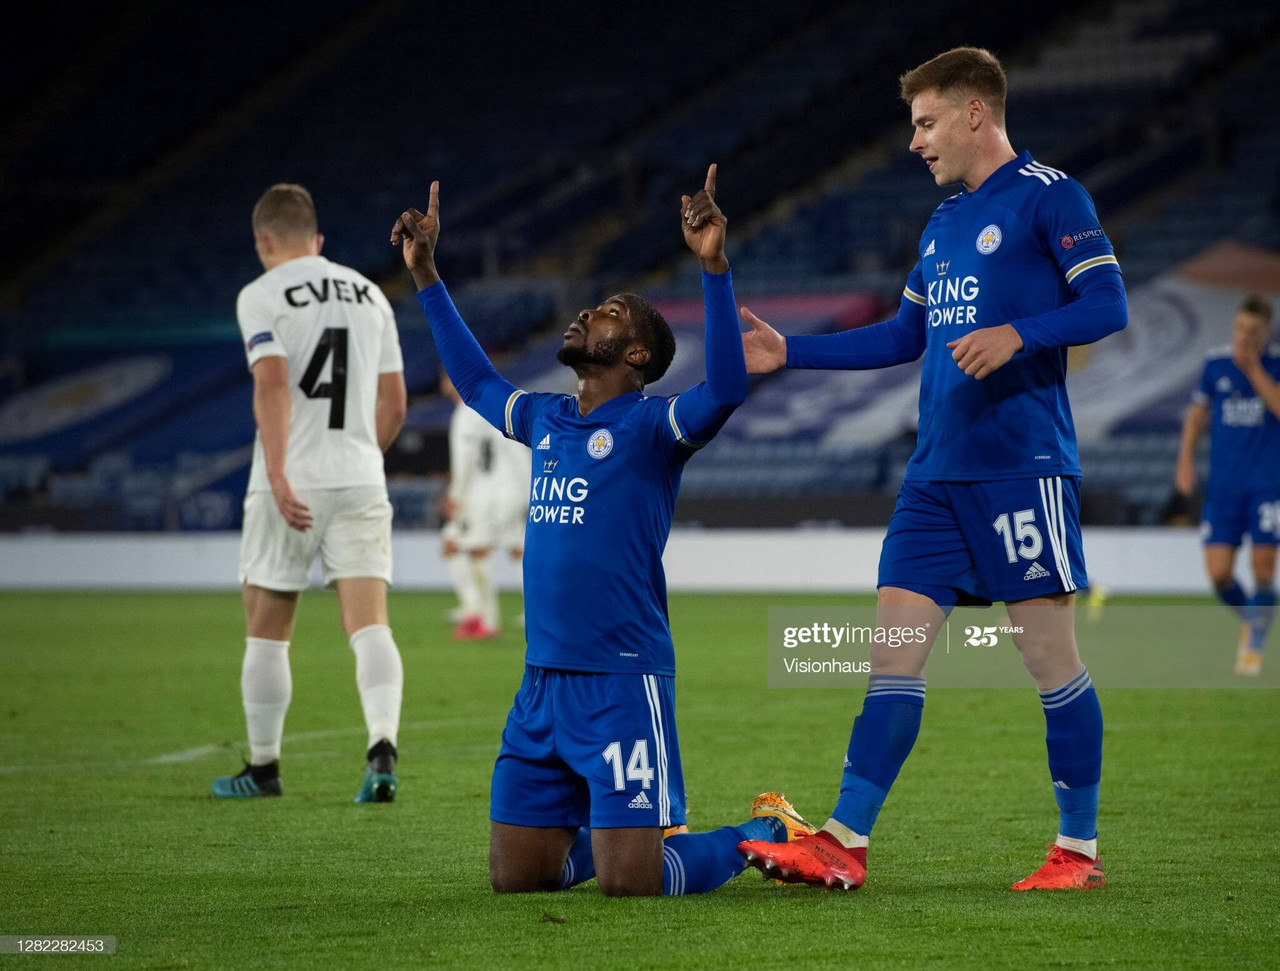 "LEICESTER, ENGLAND - OCTOBER 22: Scorer of Leicester City""u2019s third goal Kelechi Iheanacho drops to his knees after scoring whilst being congratulated by team mate Harvey Barnes during the UEFA Europa League Group G stage match between Leicester City and Zorya Luhansk at The King Power Stadium on October 22, 2020 in Leicester, United Kingdom. (Photo by Visionhaus)"